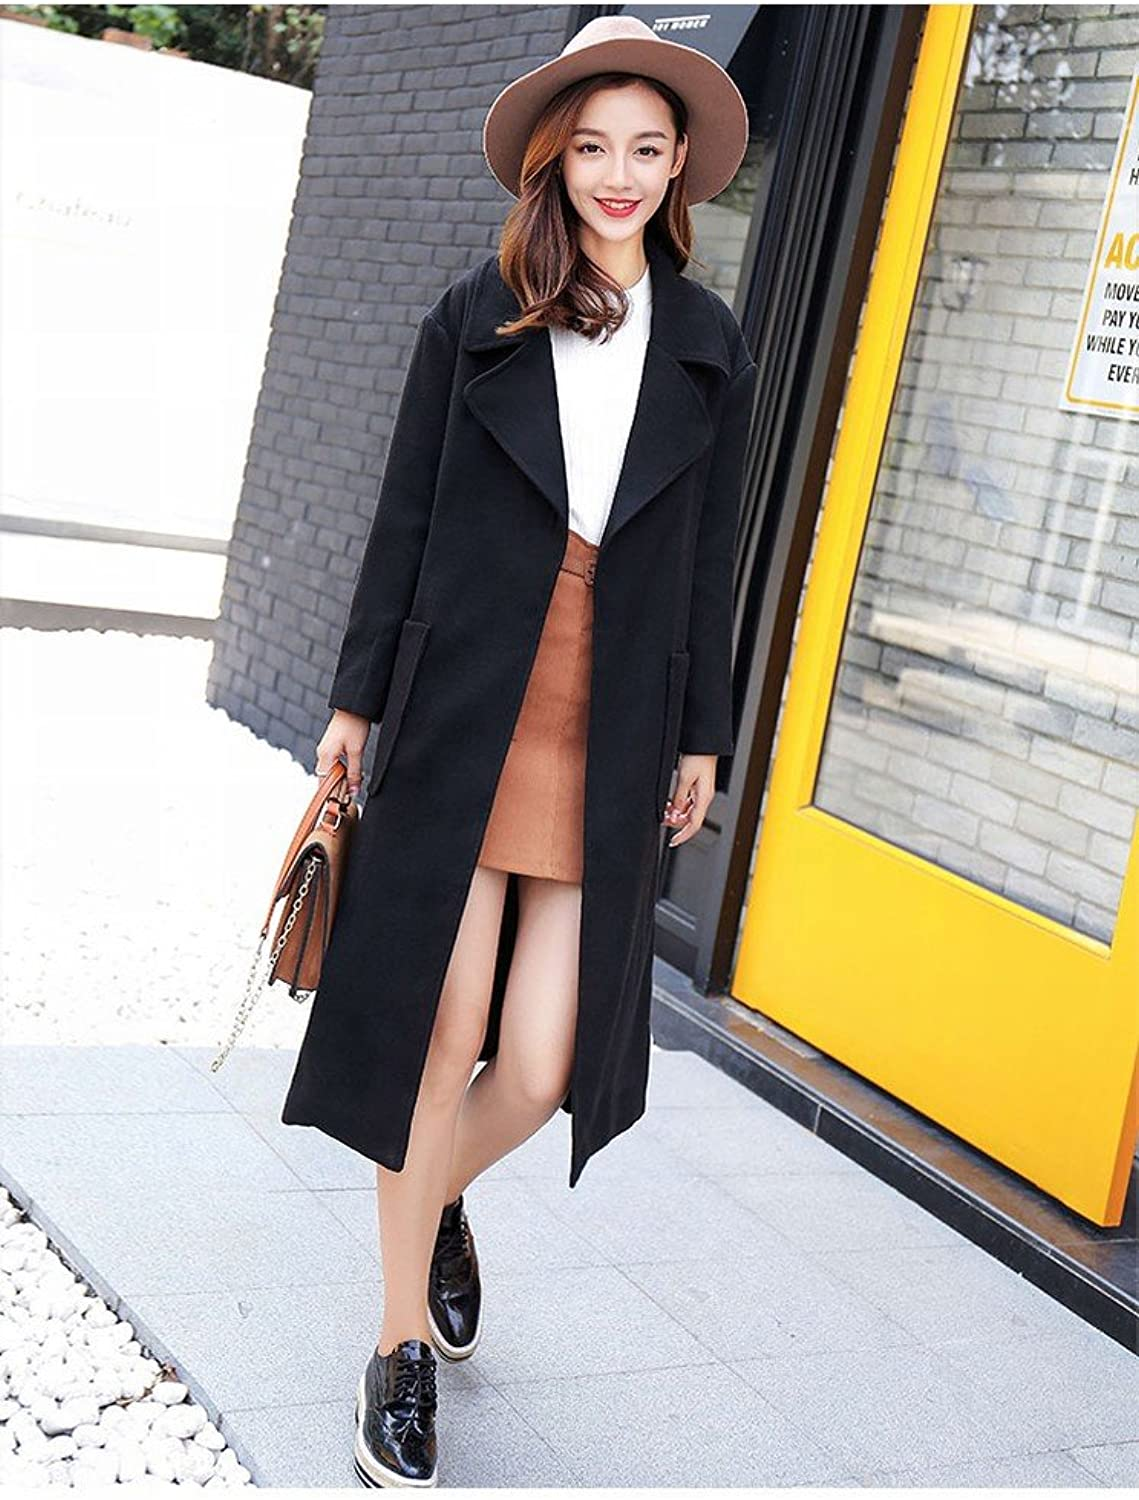 DEED Women's CoatAutumn and Winter Fashion Lengthened Paragraph Thickening Warm Woolen Coat Long Coat